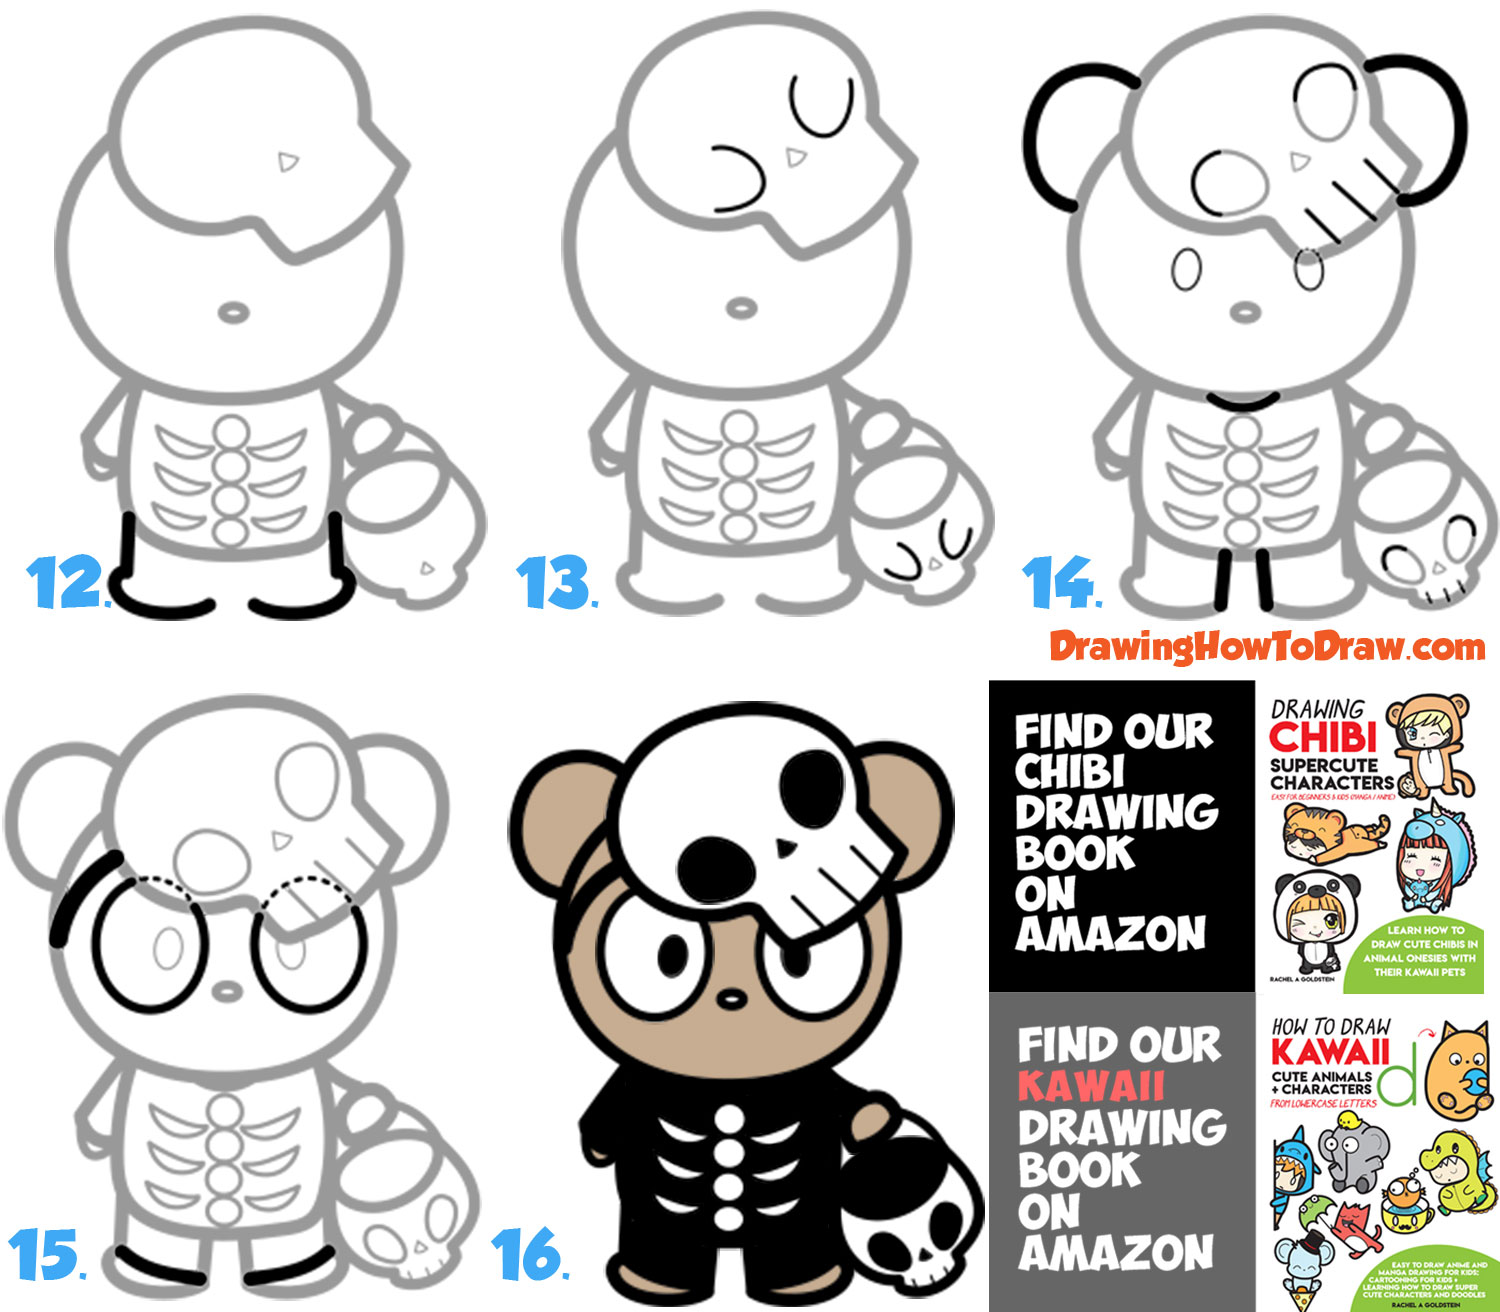 How to Draw a Cute Cartoon Bear Trick-or-Treater Dressed Up as a Skeleton for Halloween Easy Steps Drawing Lesson for Kids